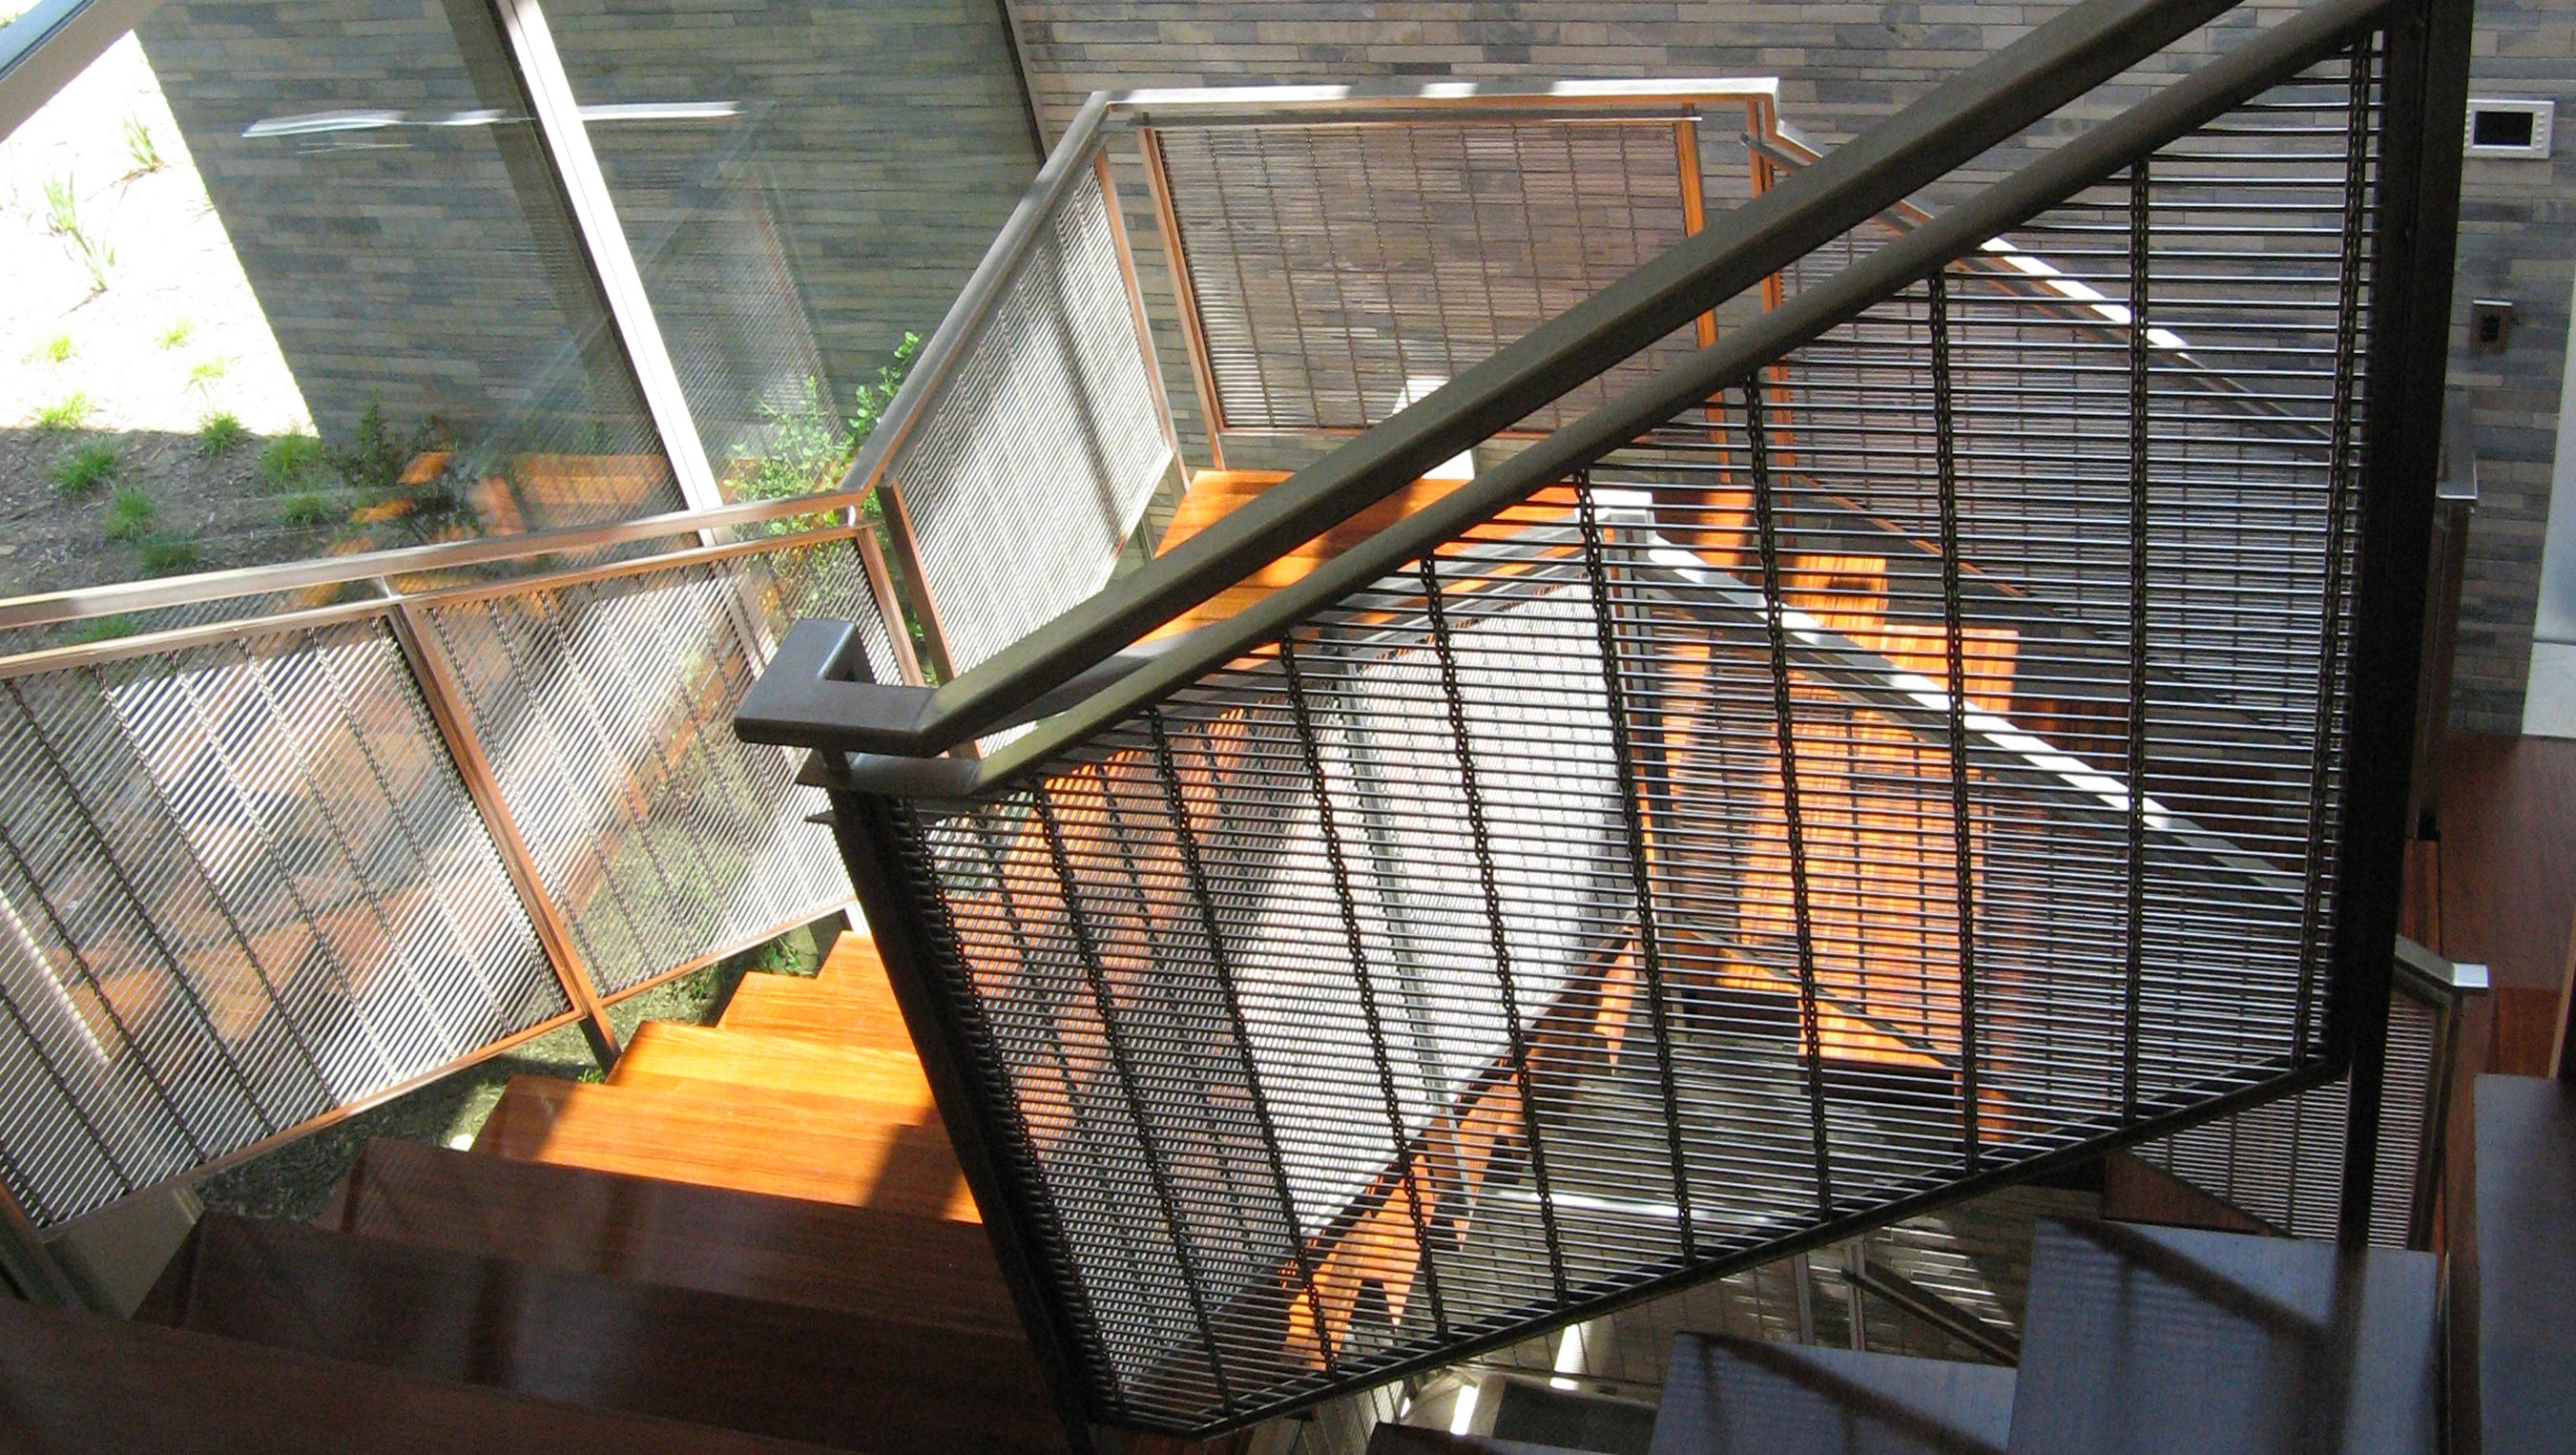 Decorative mesh, M13Z-145, adds a modern flair to the railing infill panels of this residence.